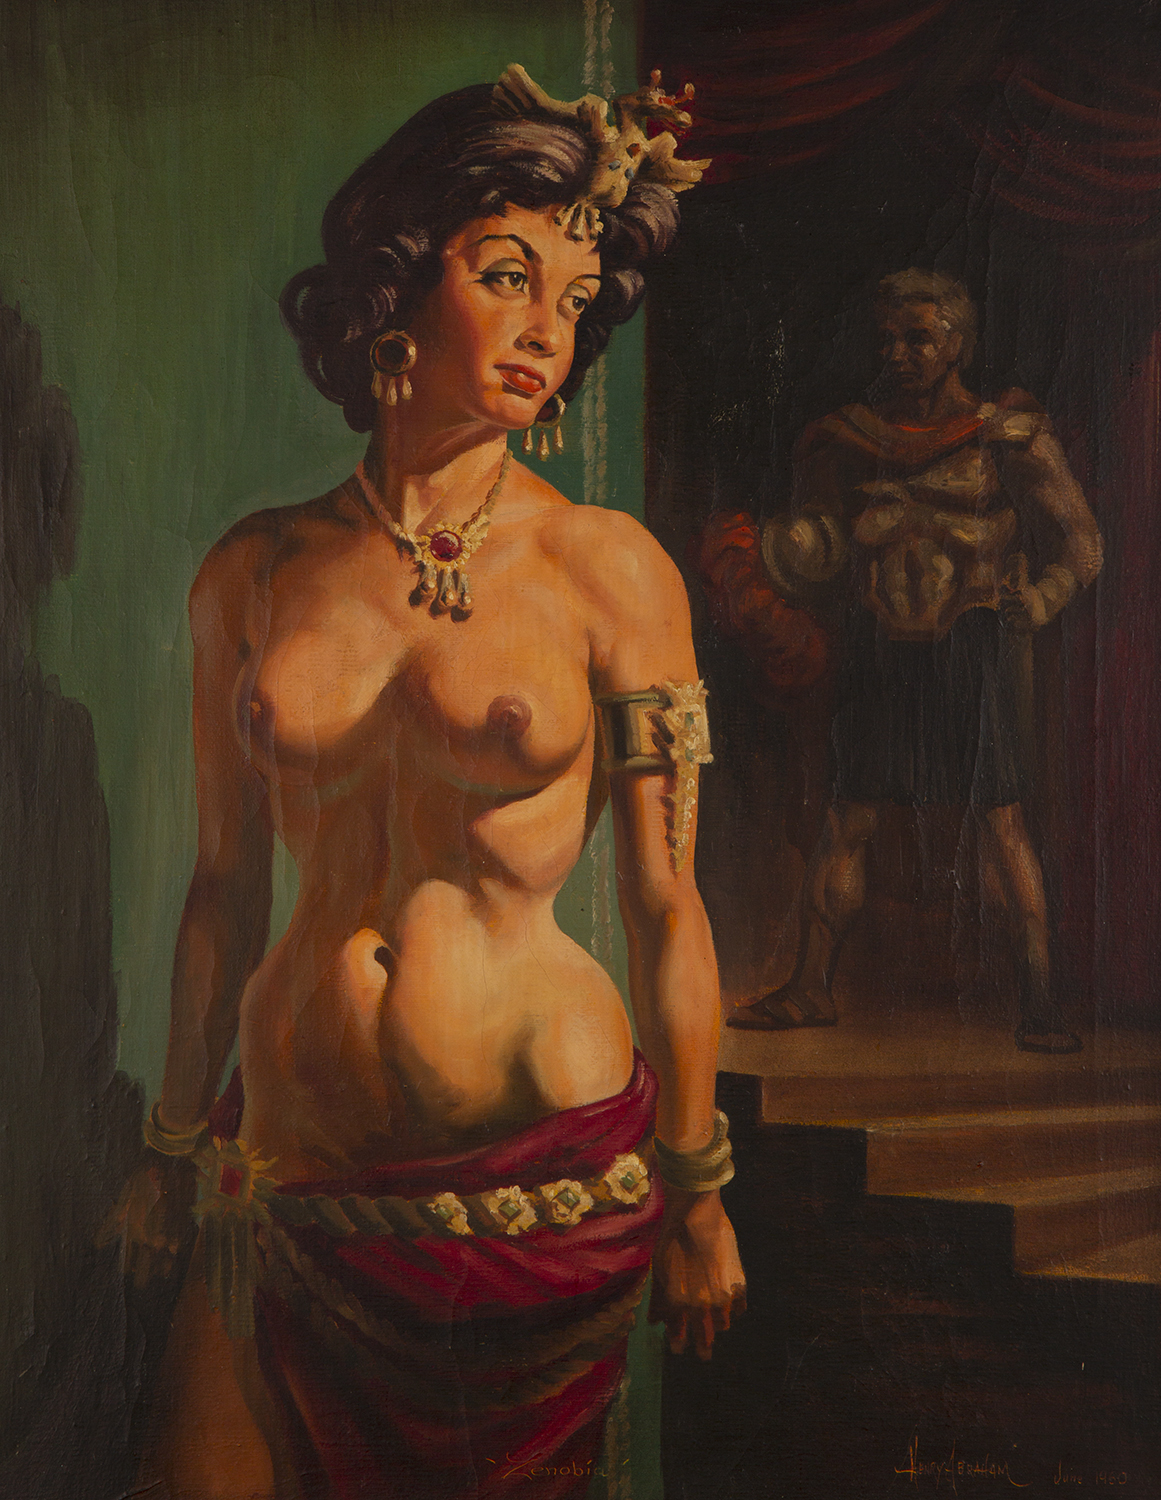 Painting of partially nude woman draped in gold jewelry